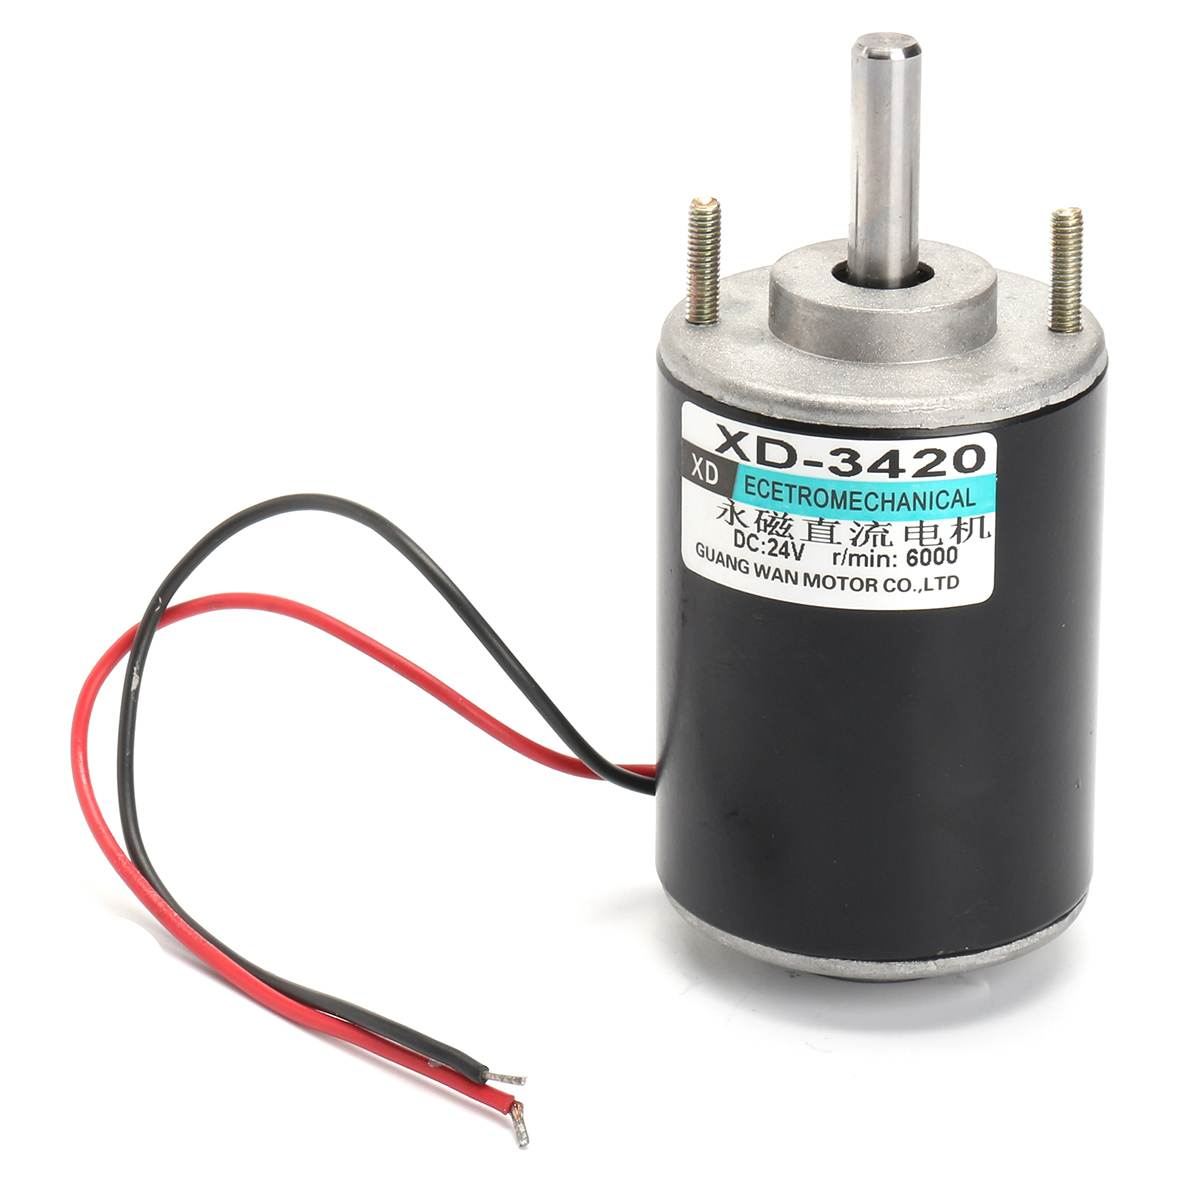 12/24V Permanent Magnet DC Electric <font><b>Motor</b></font> High Speed CW/CCW DIY Generator Scooter Drive Speed Control <font><b>3000RPM</b></font> 6000RPM 30W image